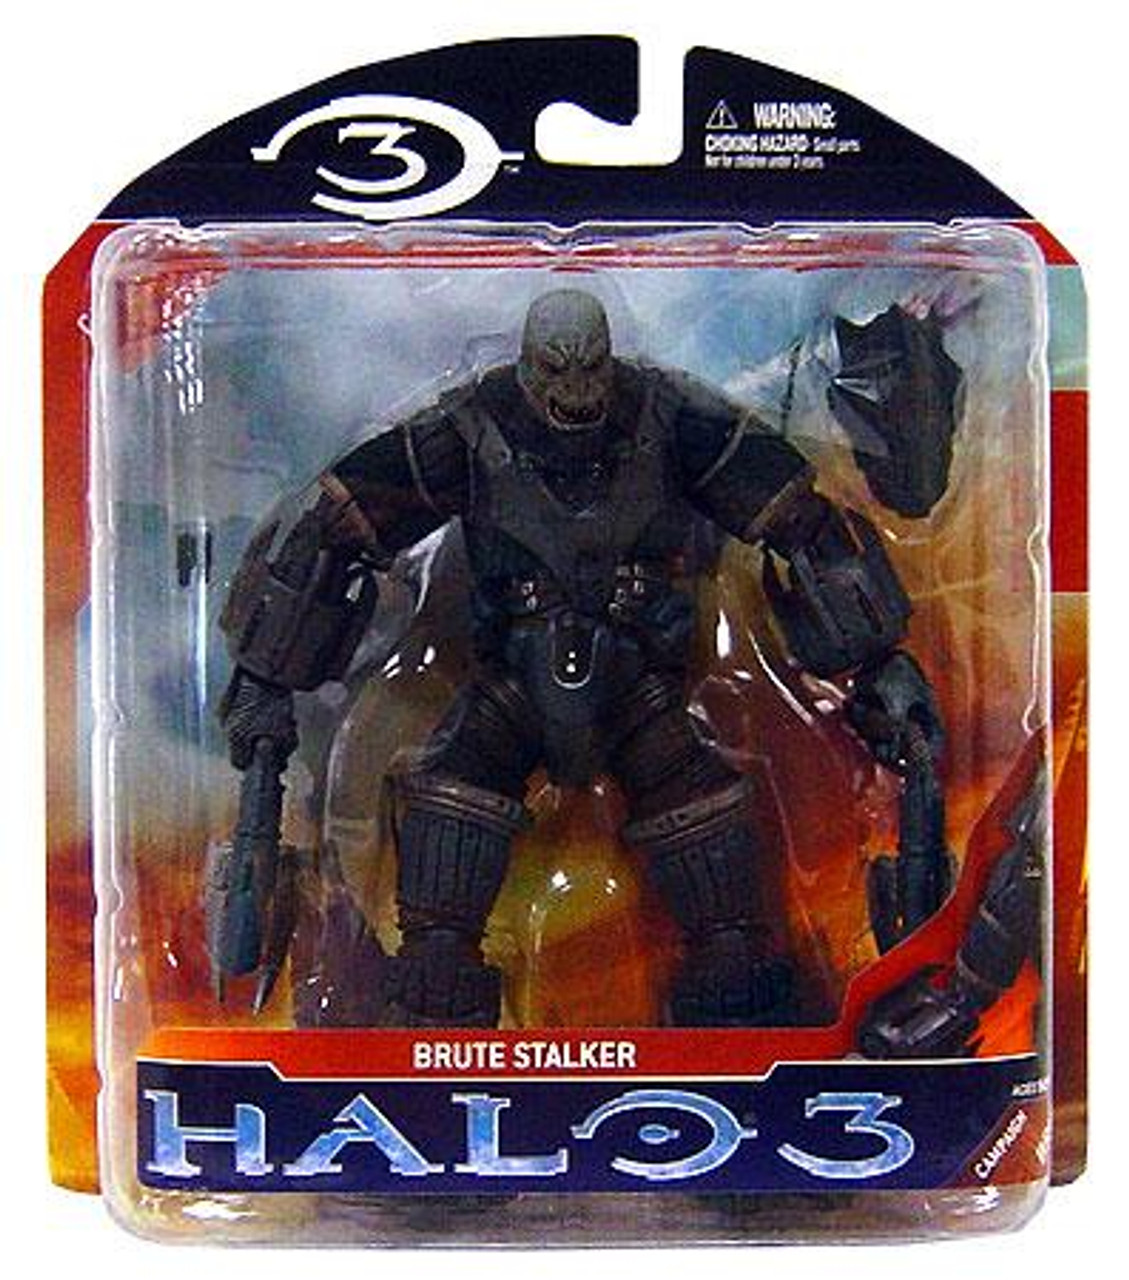 McFarlane Toys Halo 3 Series 2 Brute Stalker Action Figure